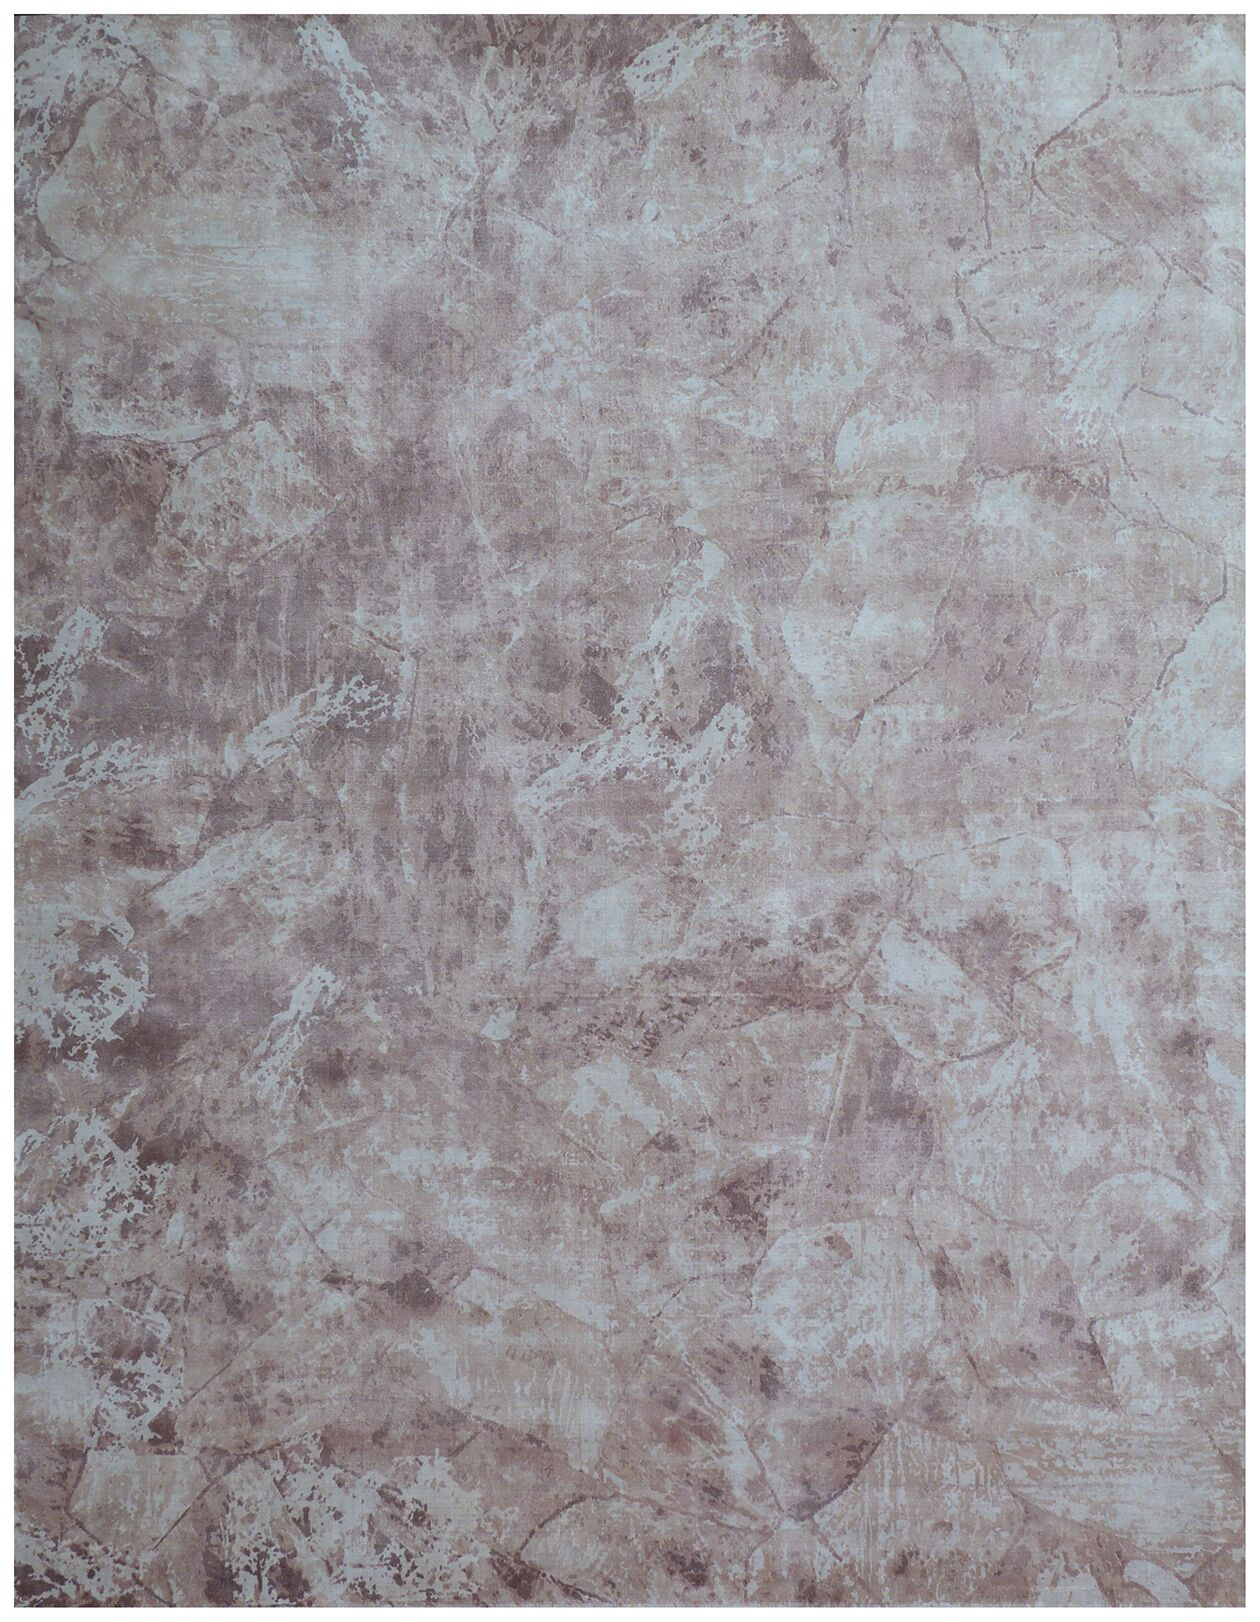 Cassina Hand-Woven Rust Area Rug Rug Size: Rectangle 9' x 12'